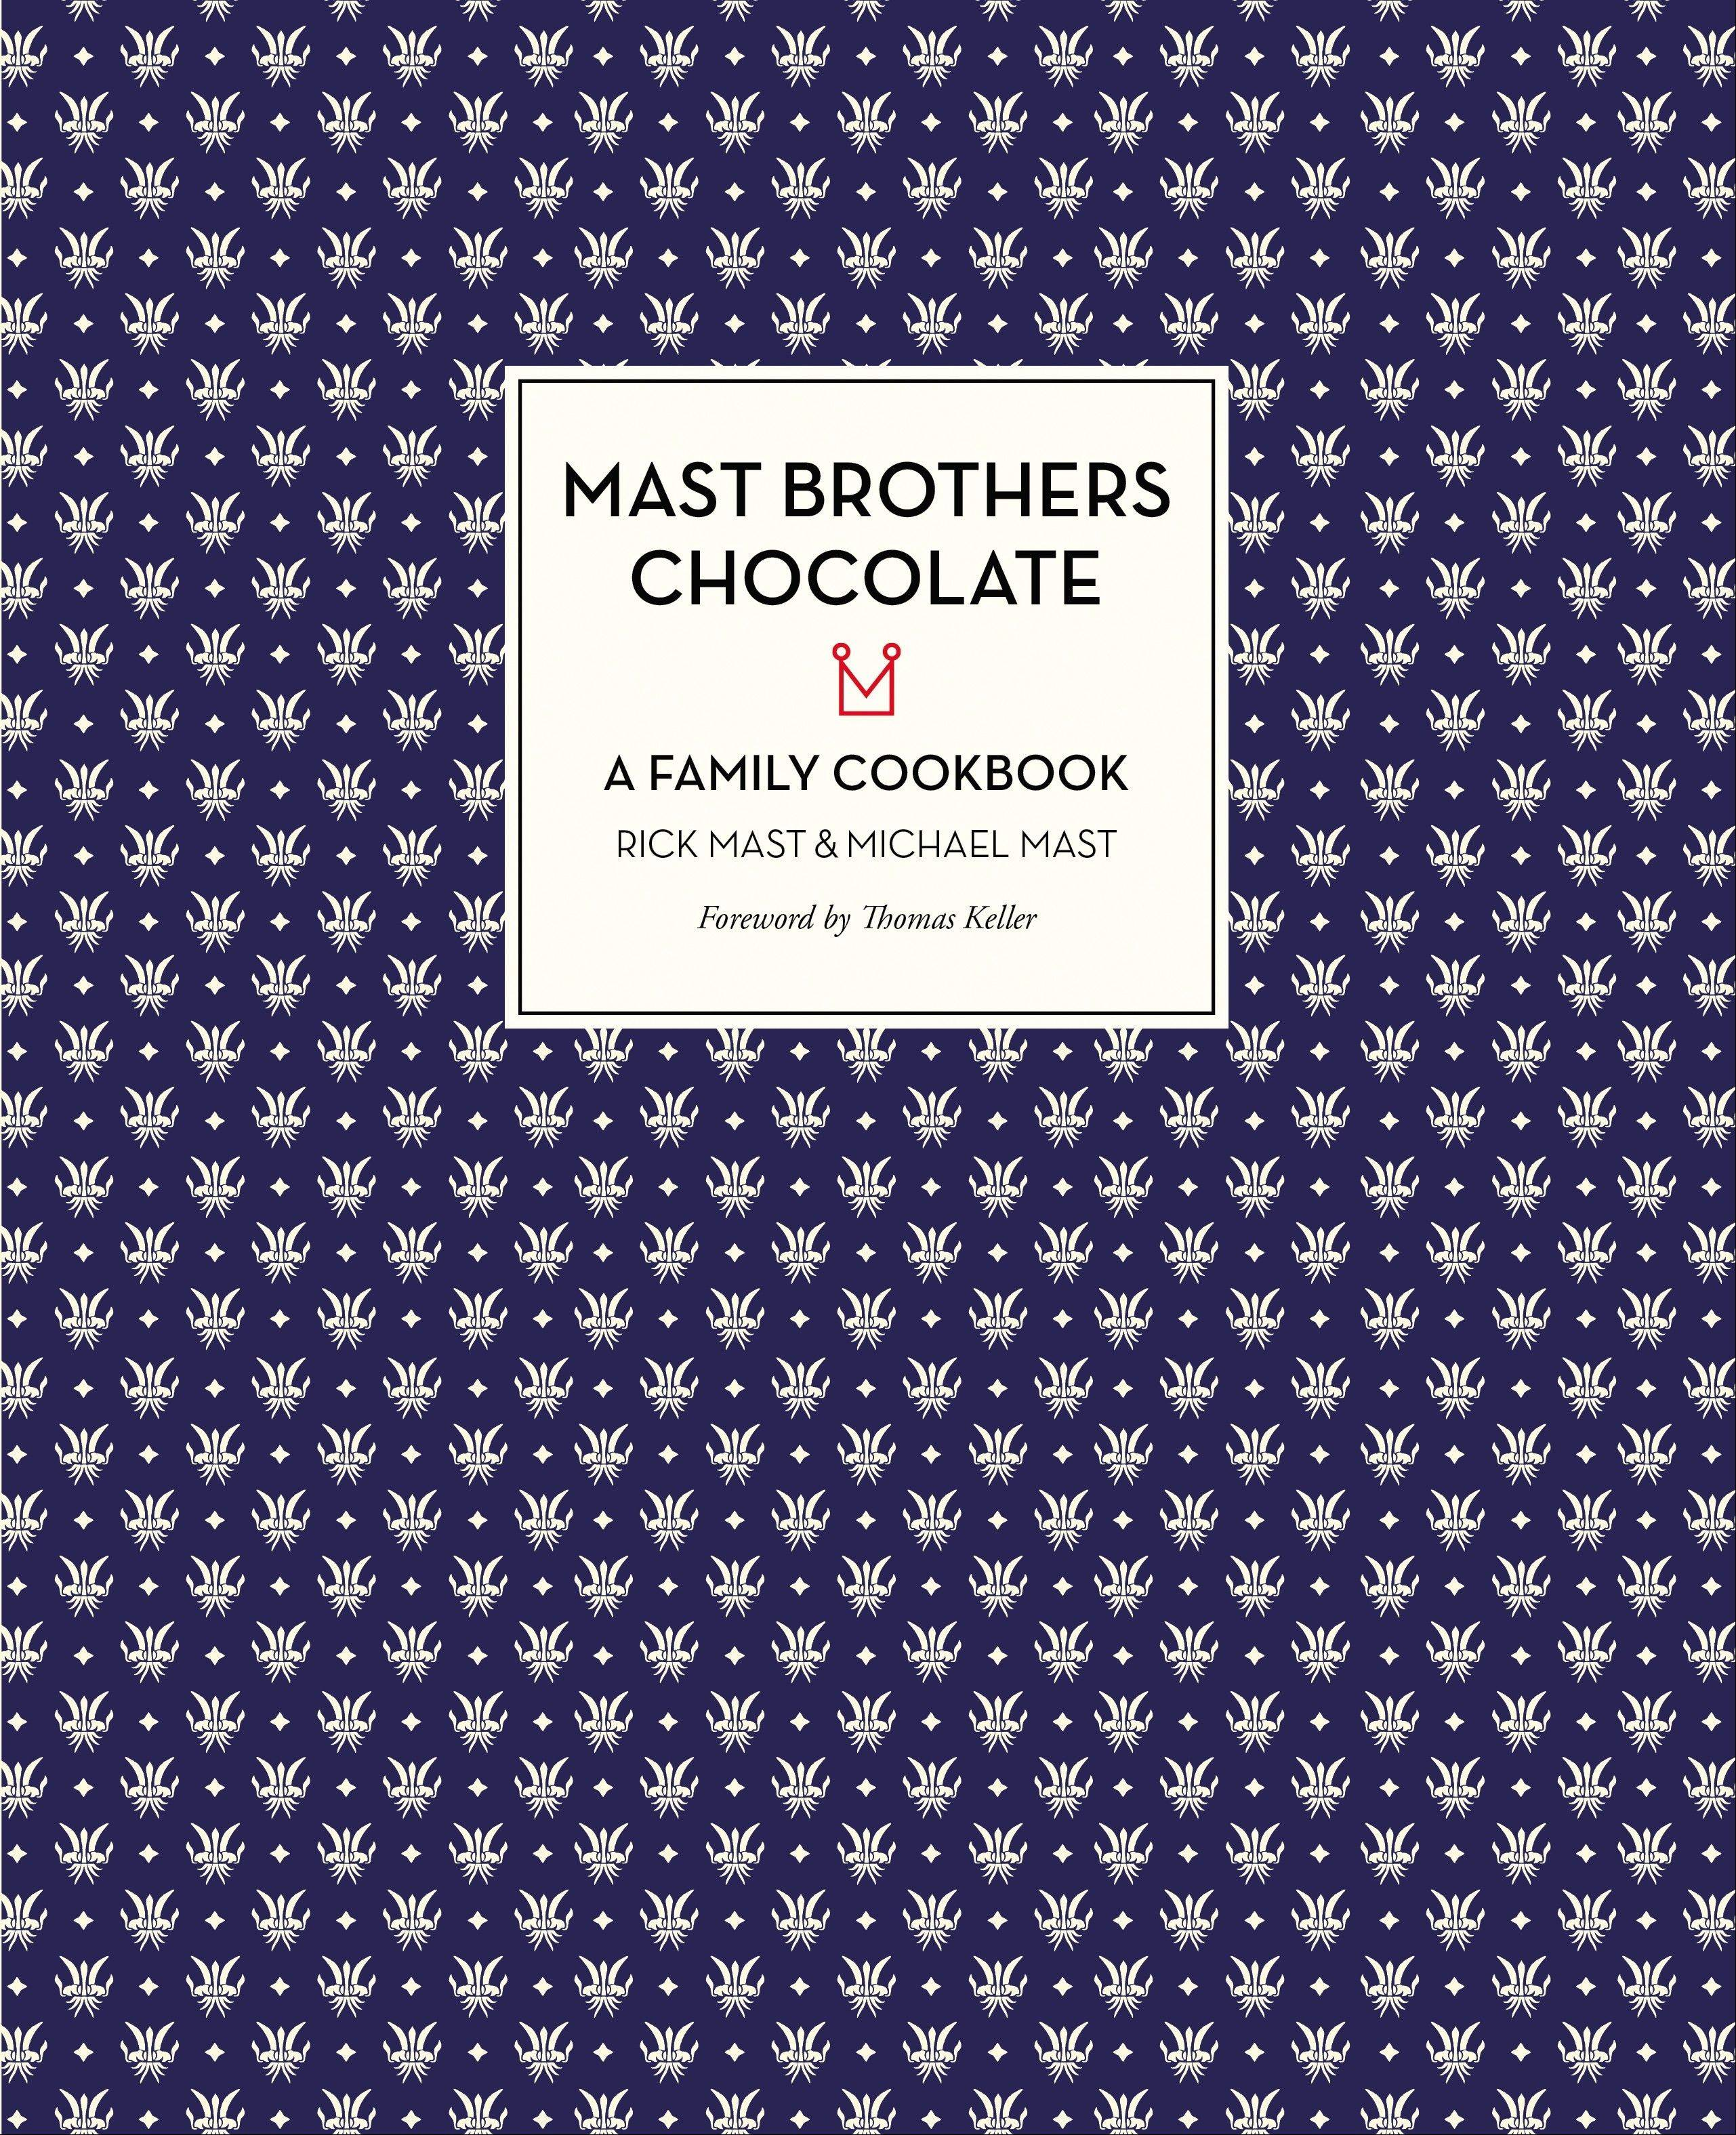 """Mast Brothers Chocolate"" by Rick Mast and Michael Mast"